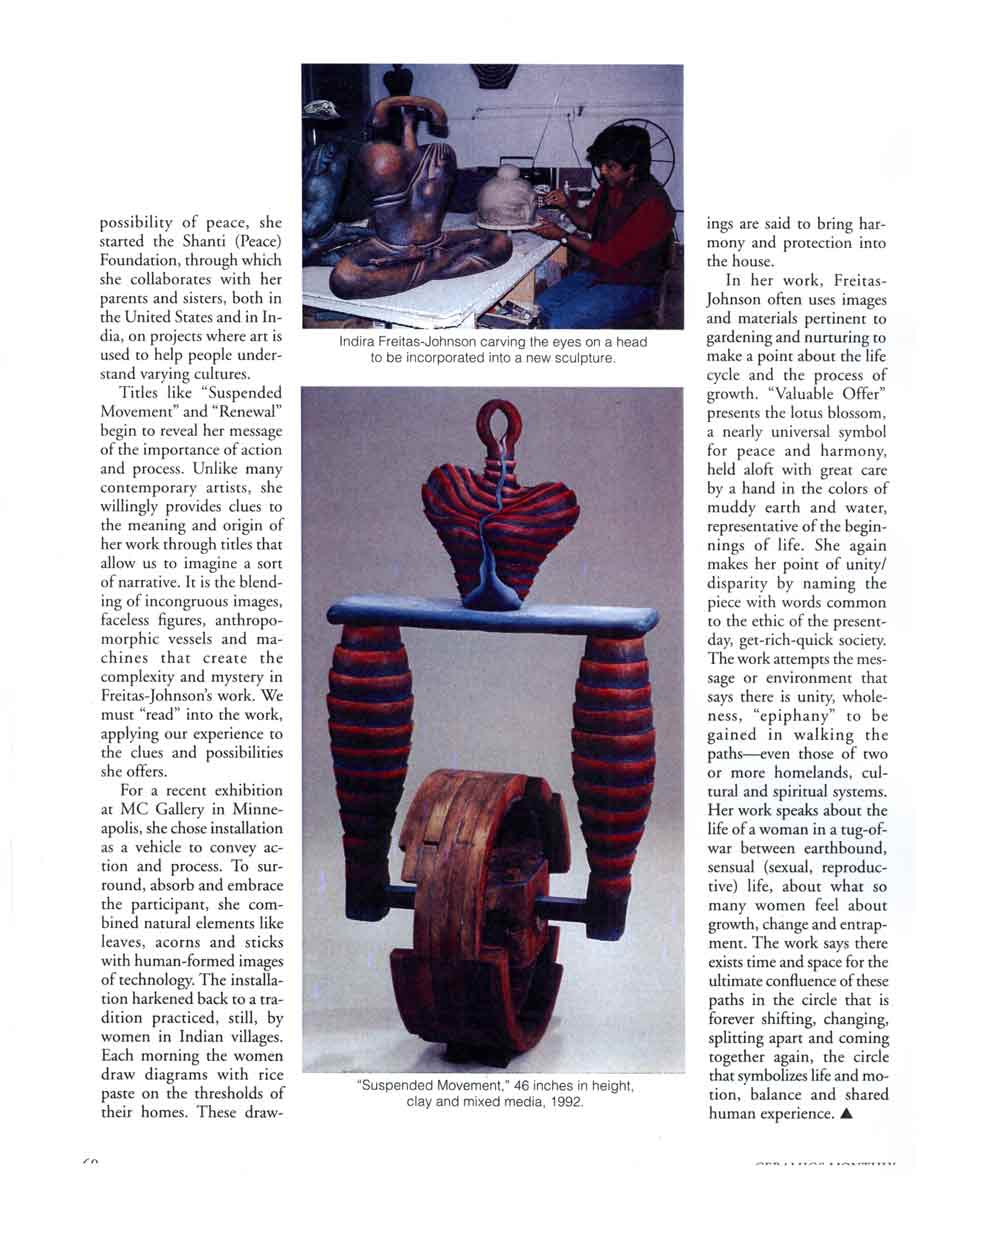 Valuable Offerings: The Ceramic Sculpture of Indira Freitas-Johnson, article, pg 3